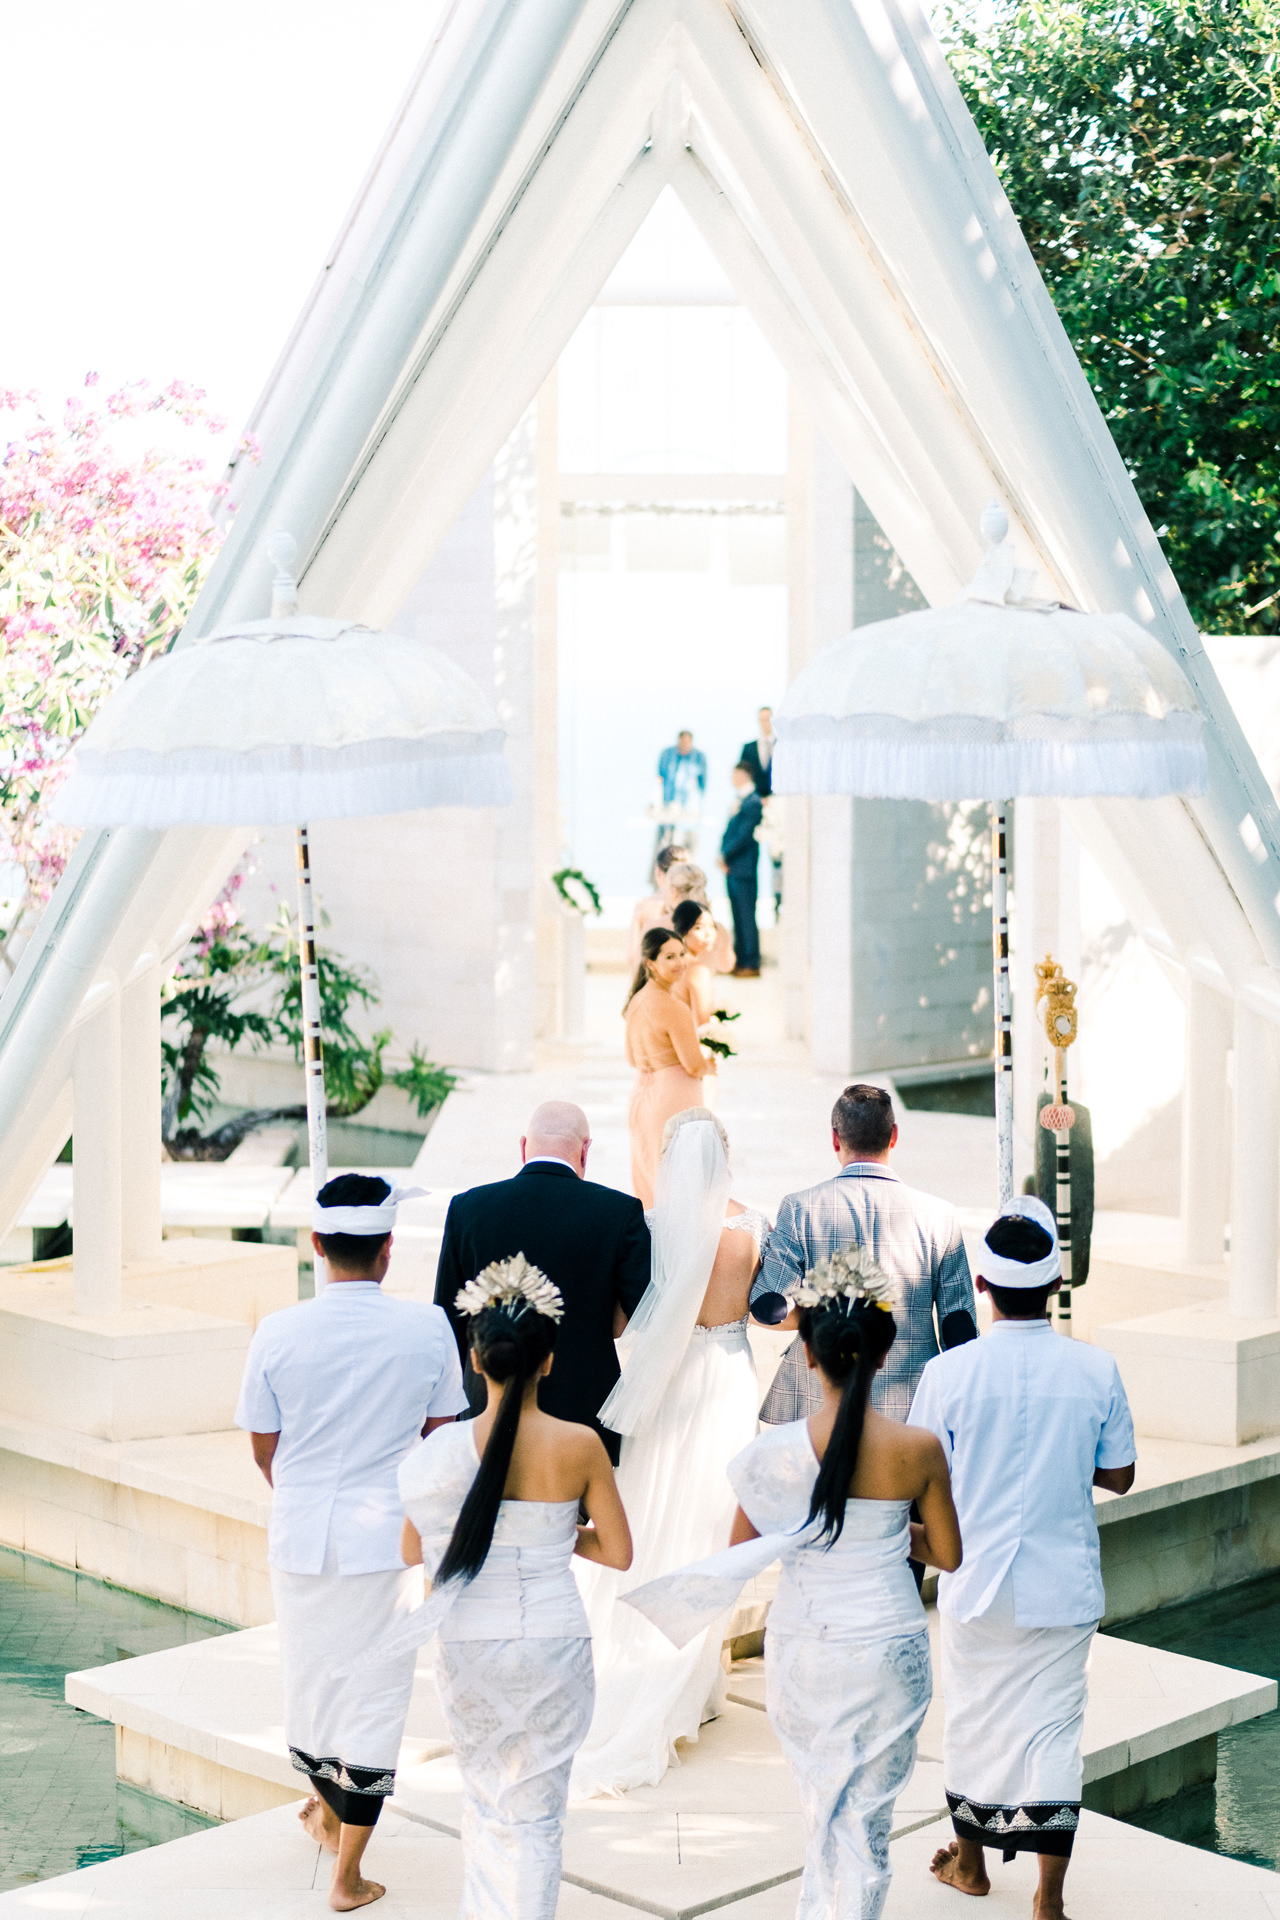 M&T: Tirtha Bridal Bali Wedding Destination 14